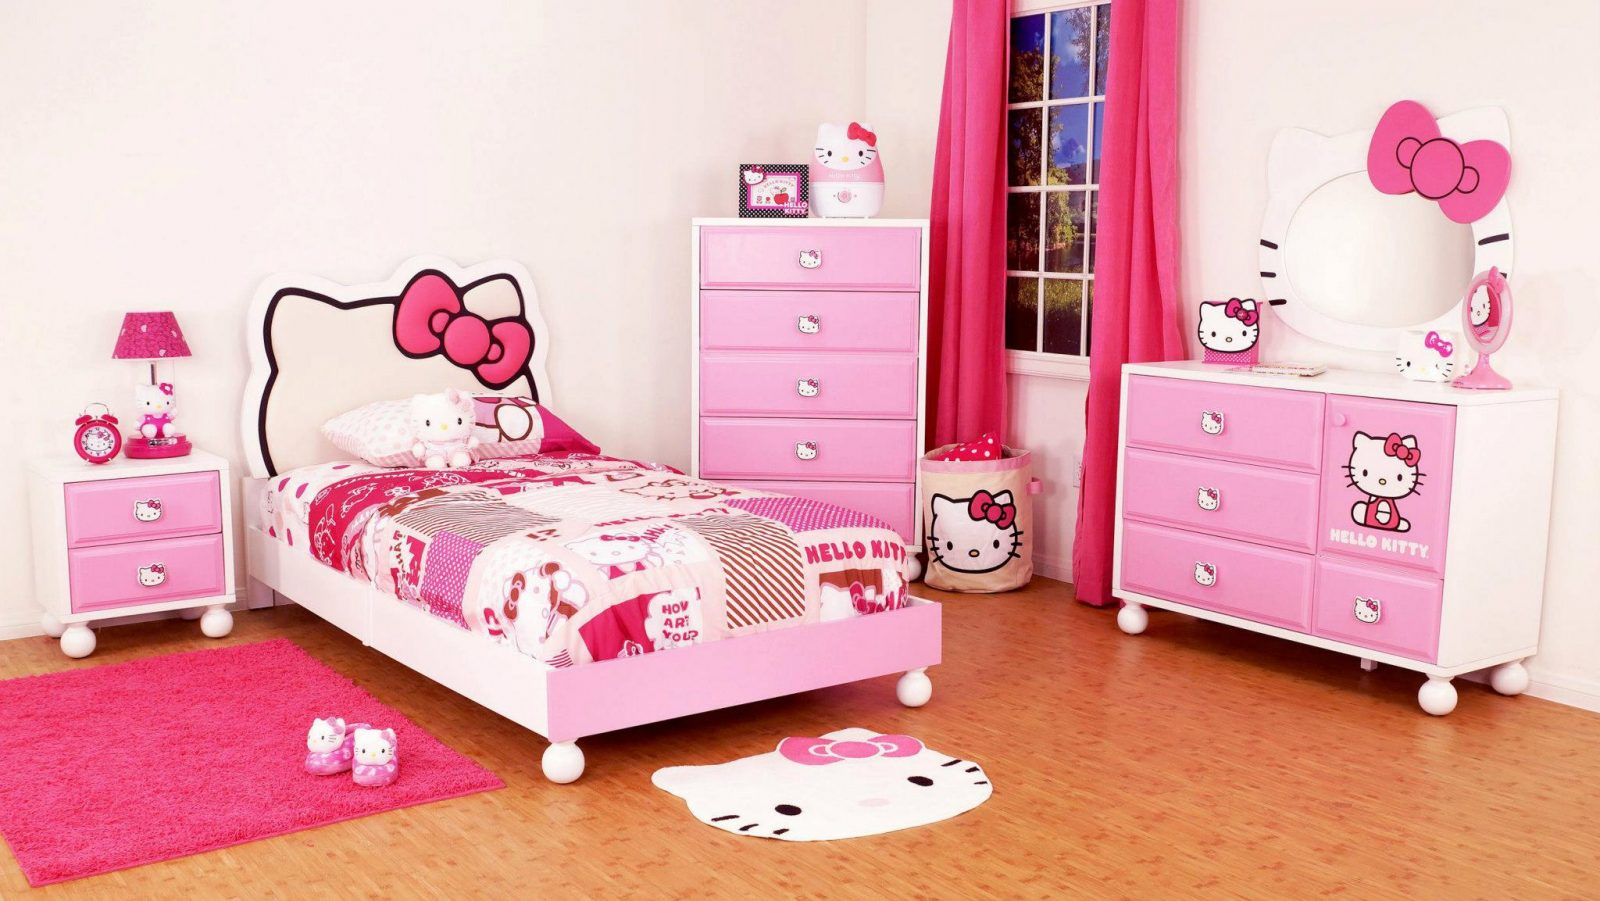 Habitaci n de hello kitty para ni as im genes y fotos for Dormitorios para ninas quito